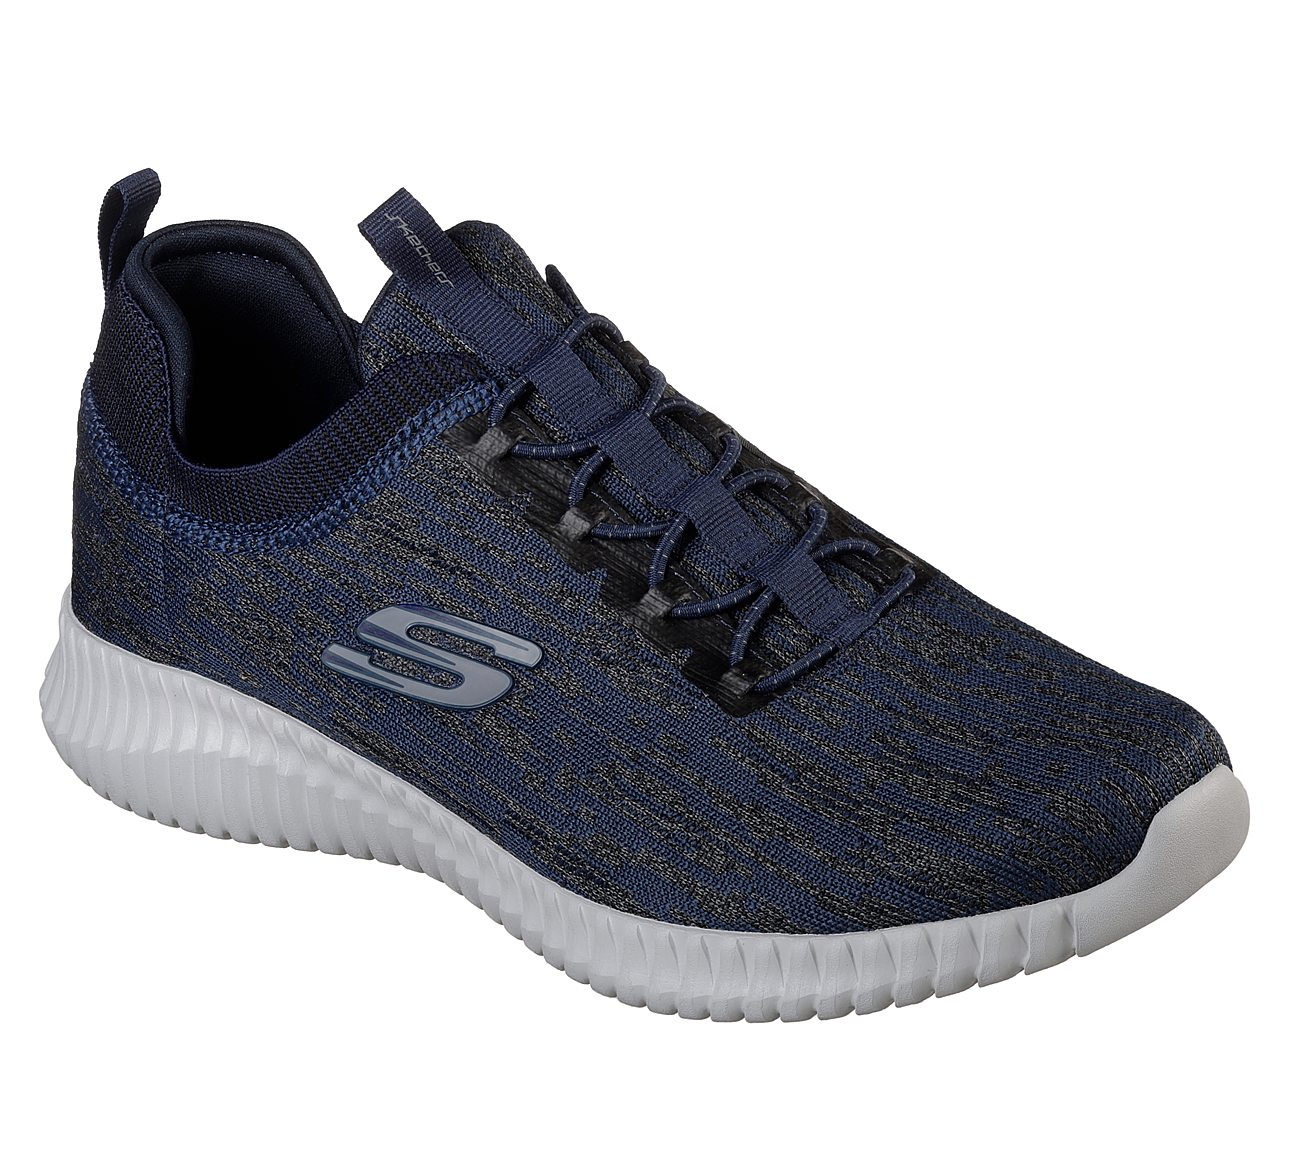 skechers elite member number